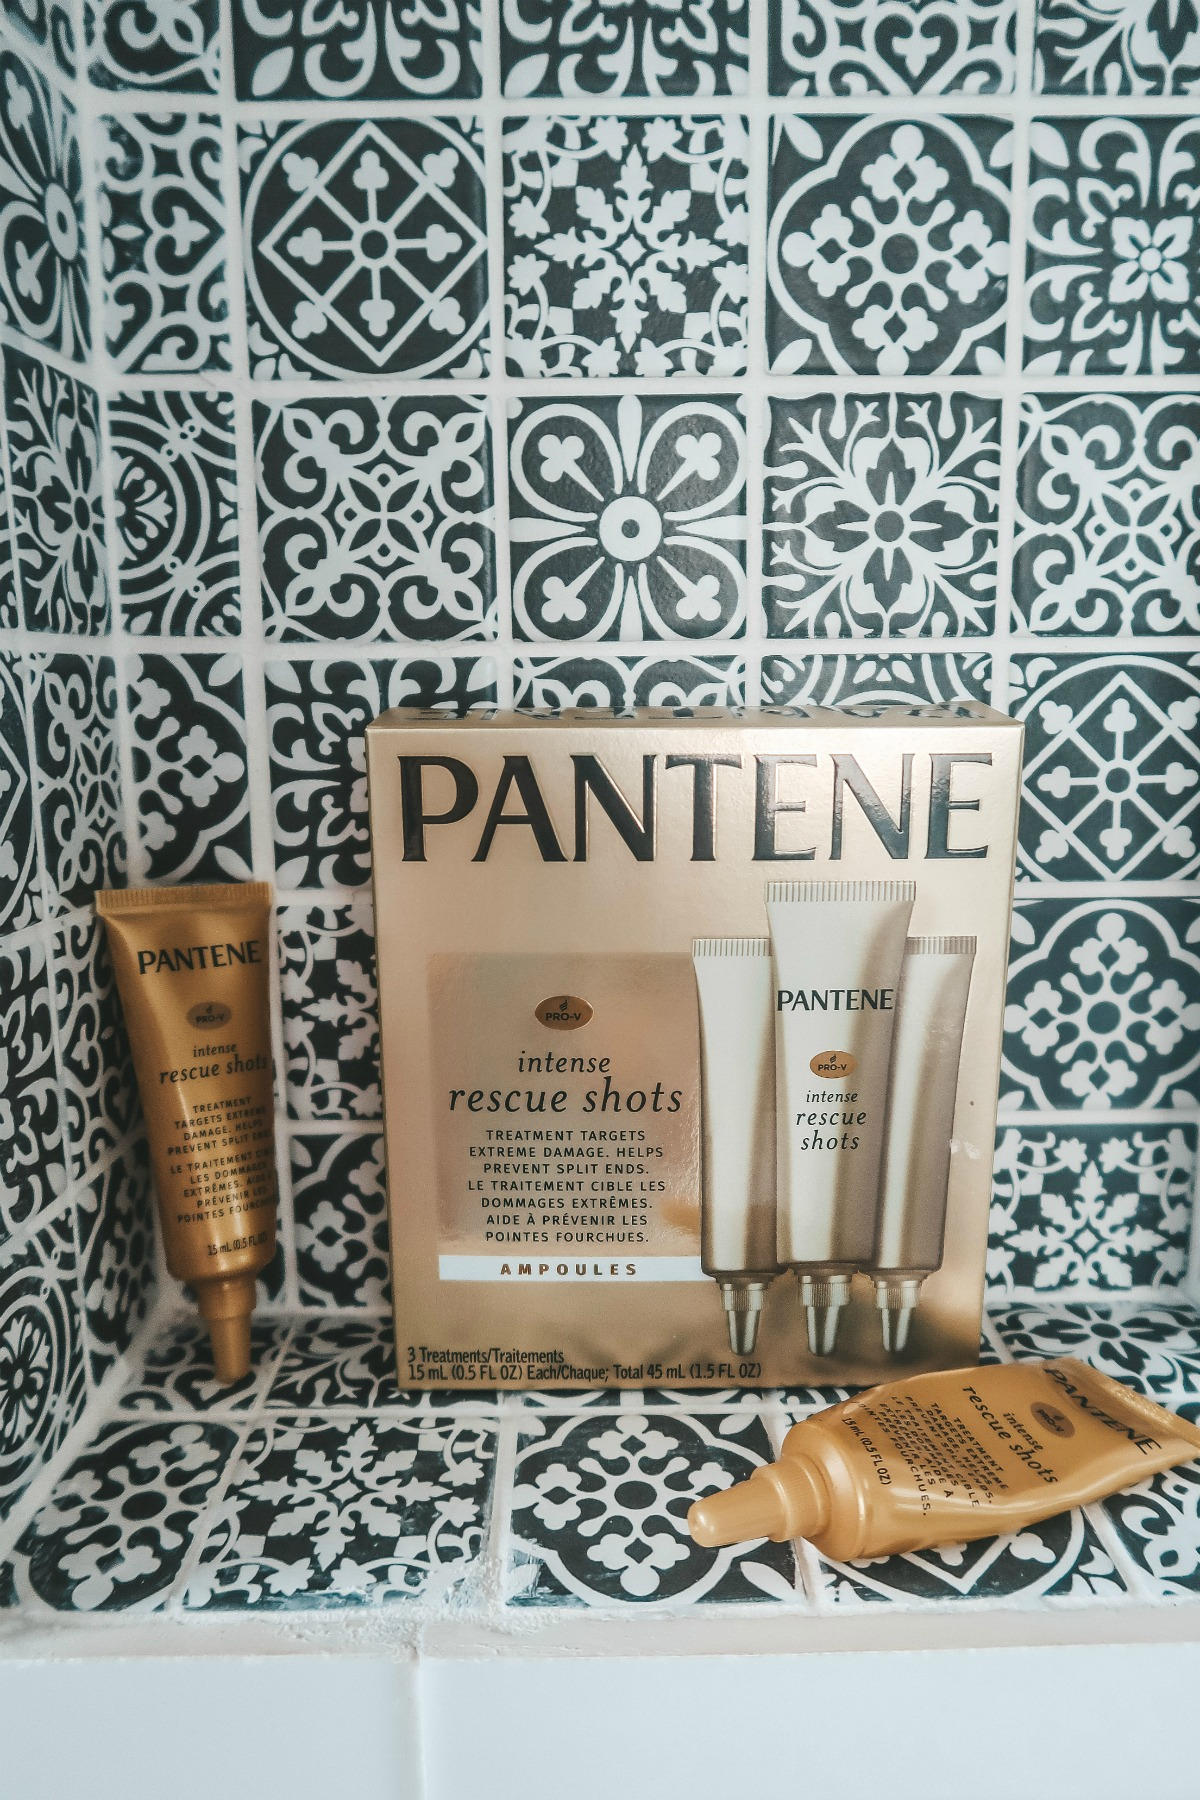 PANTENE RESCUE SHOTS PRODUCT REVIEW , Pantene Pro-V Rescue Shots